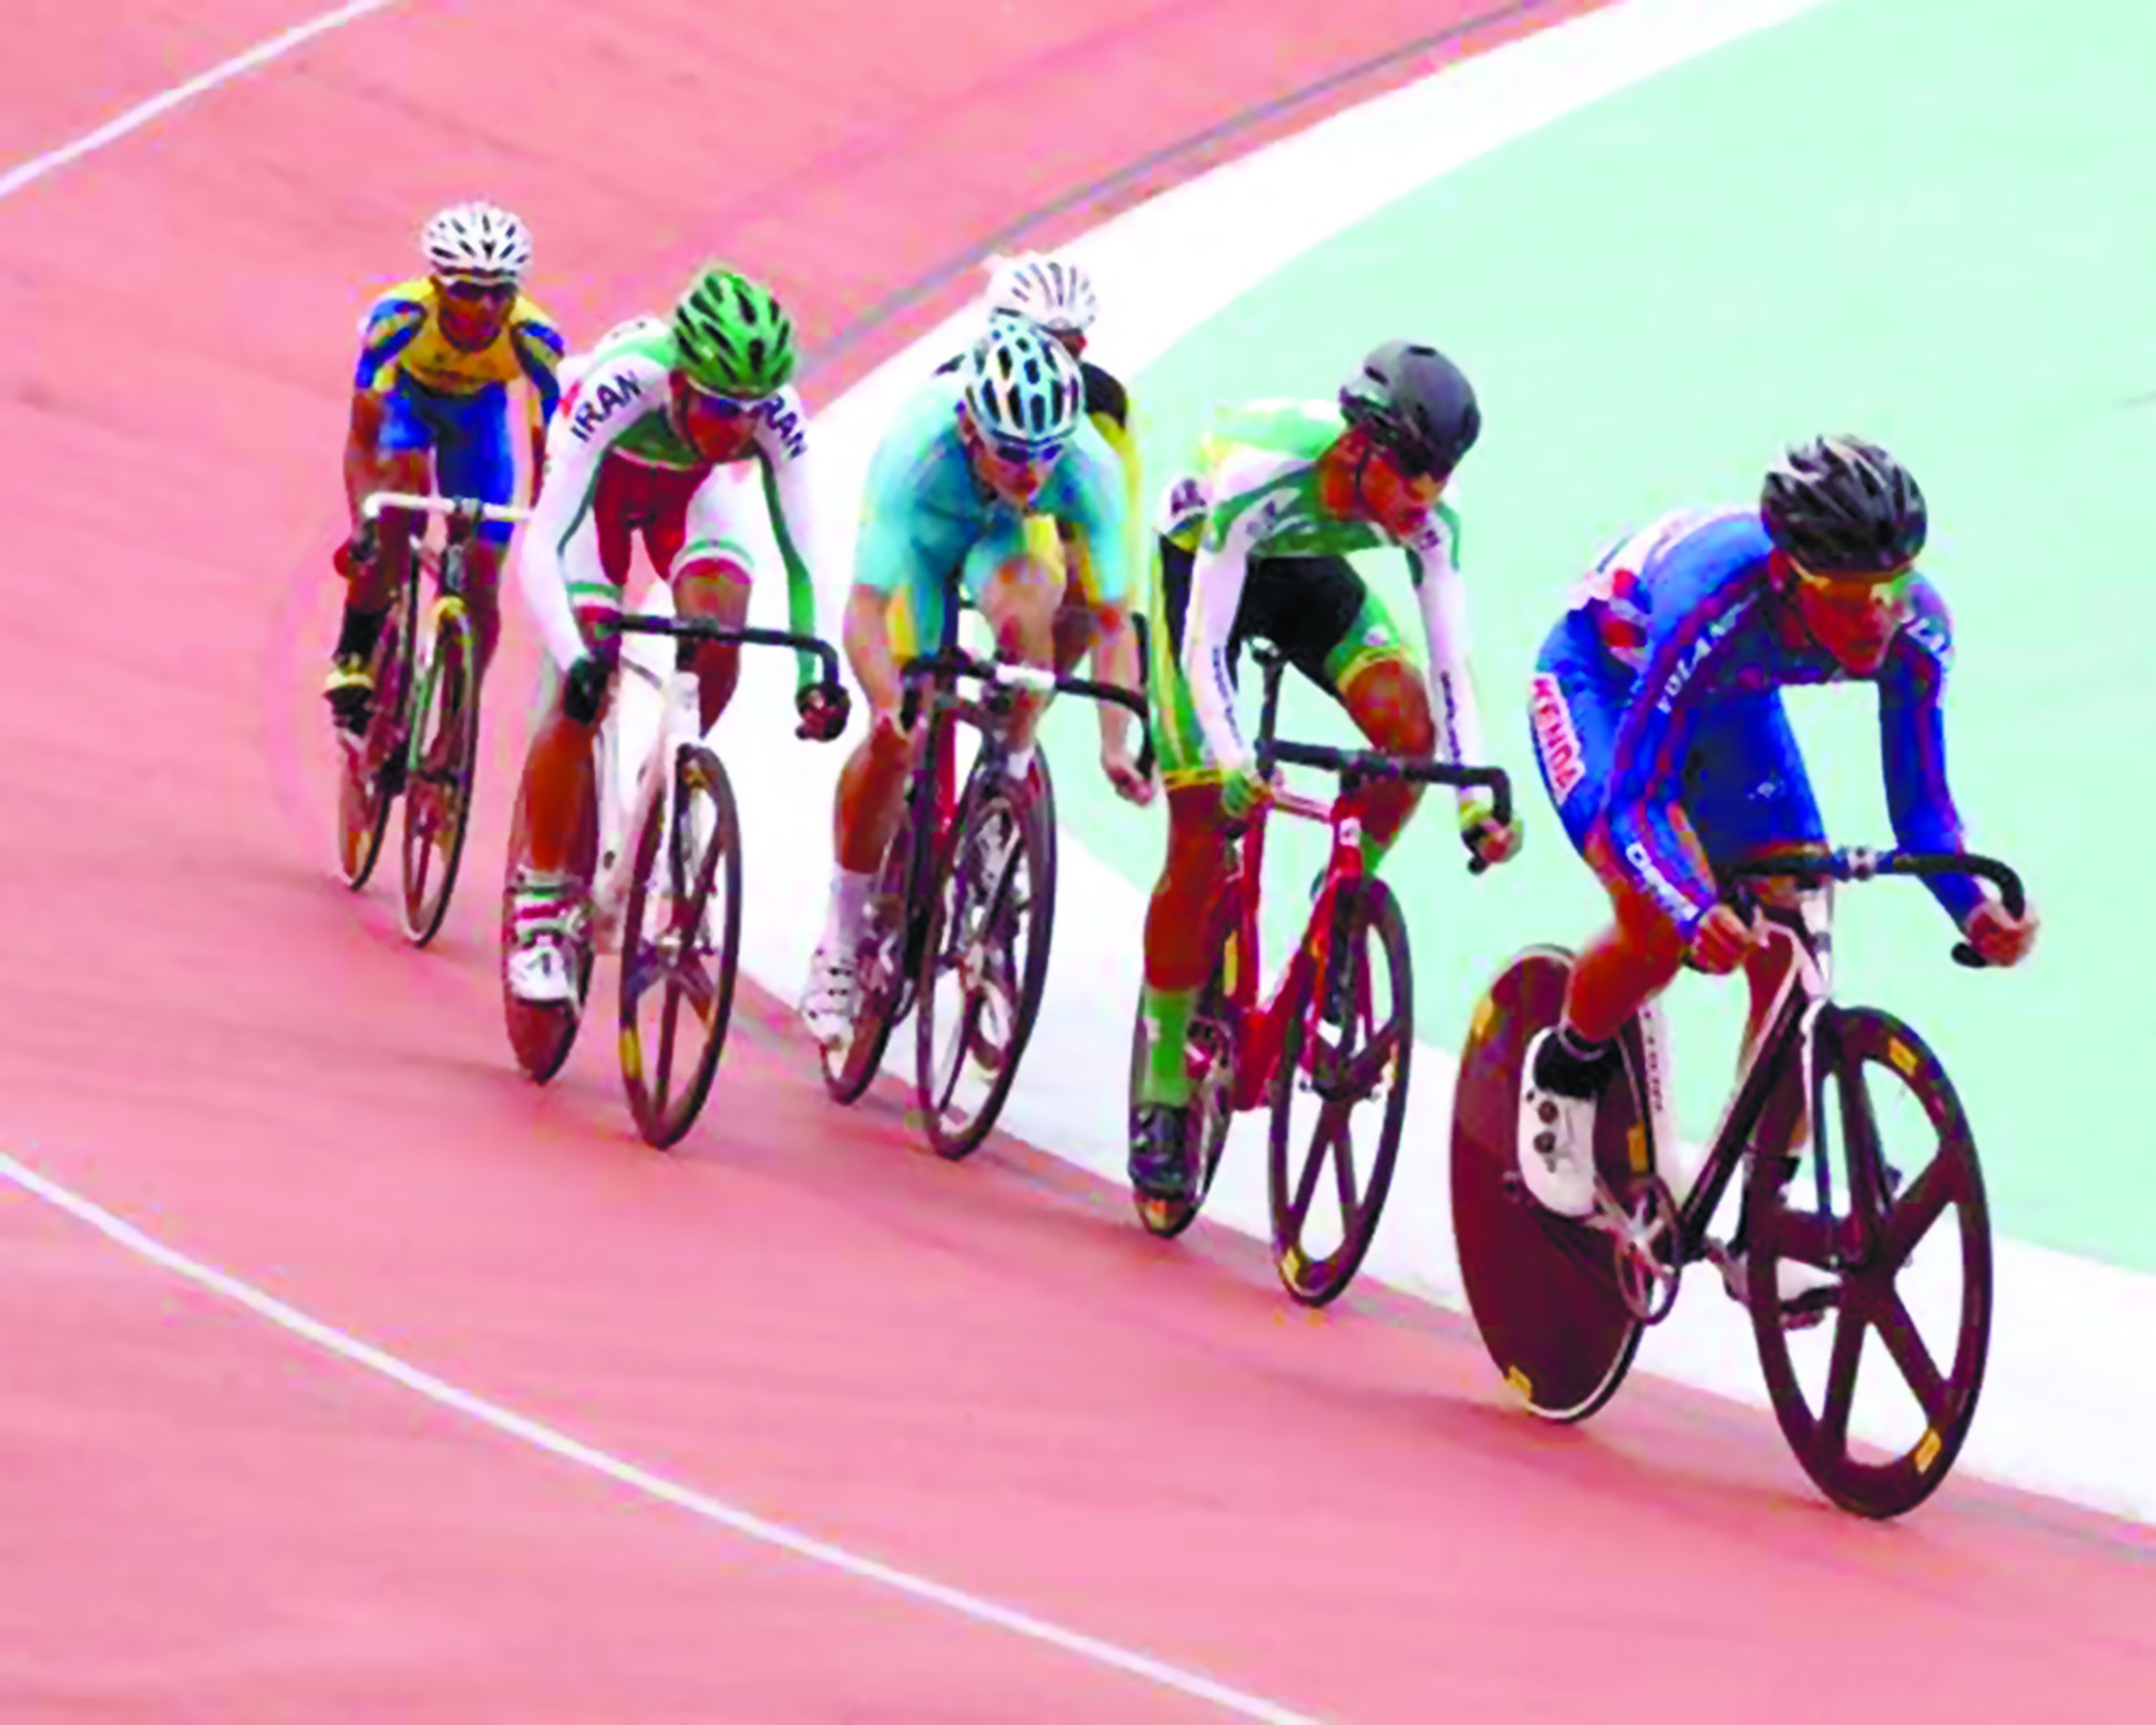 ... support to the road and track cycling events. He hoped that the riders  could keep up their efforts in future training and games and win honor for  Macau. 3dea29540